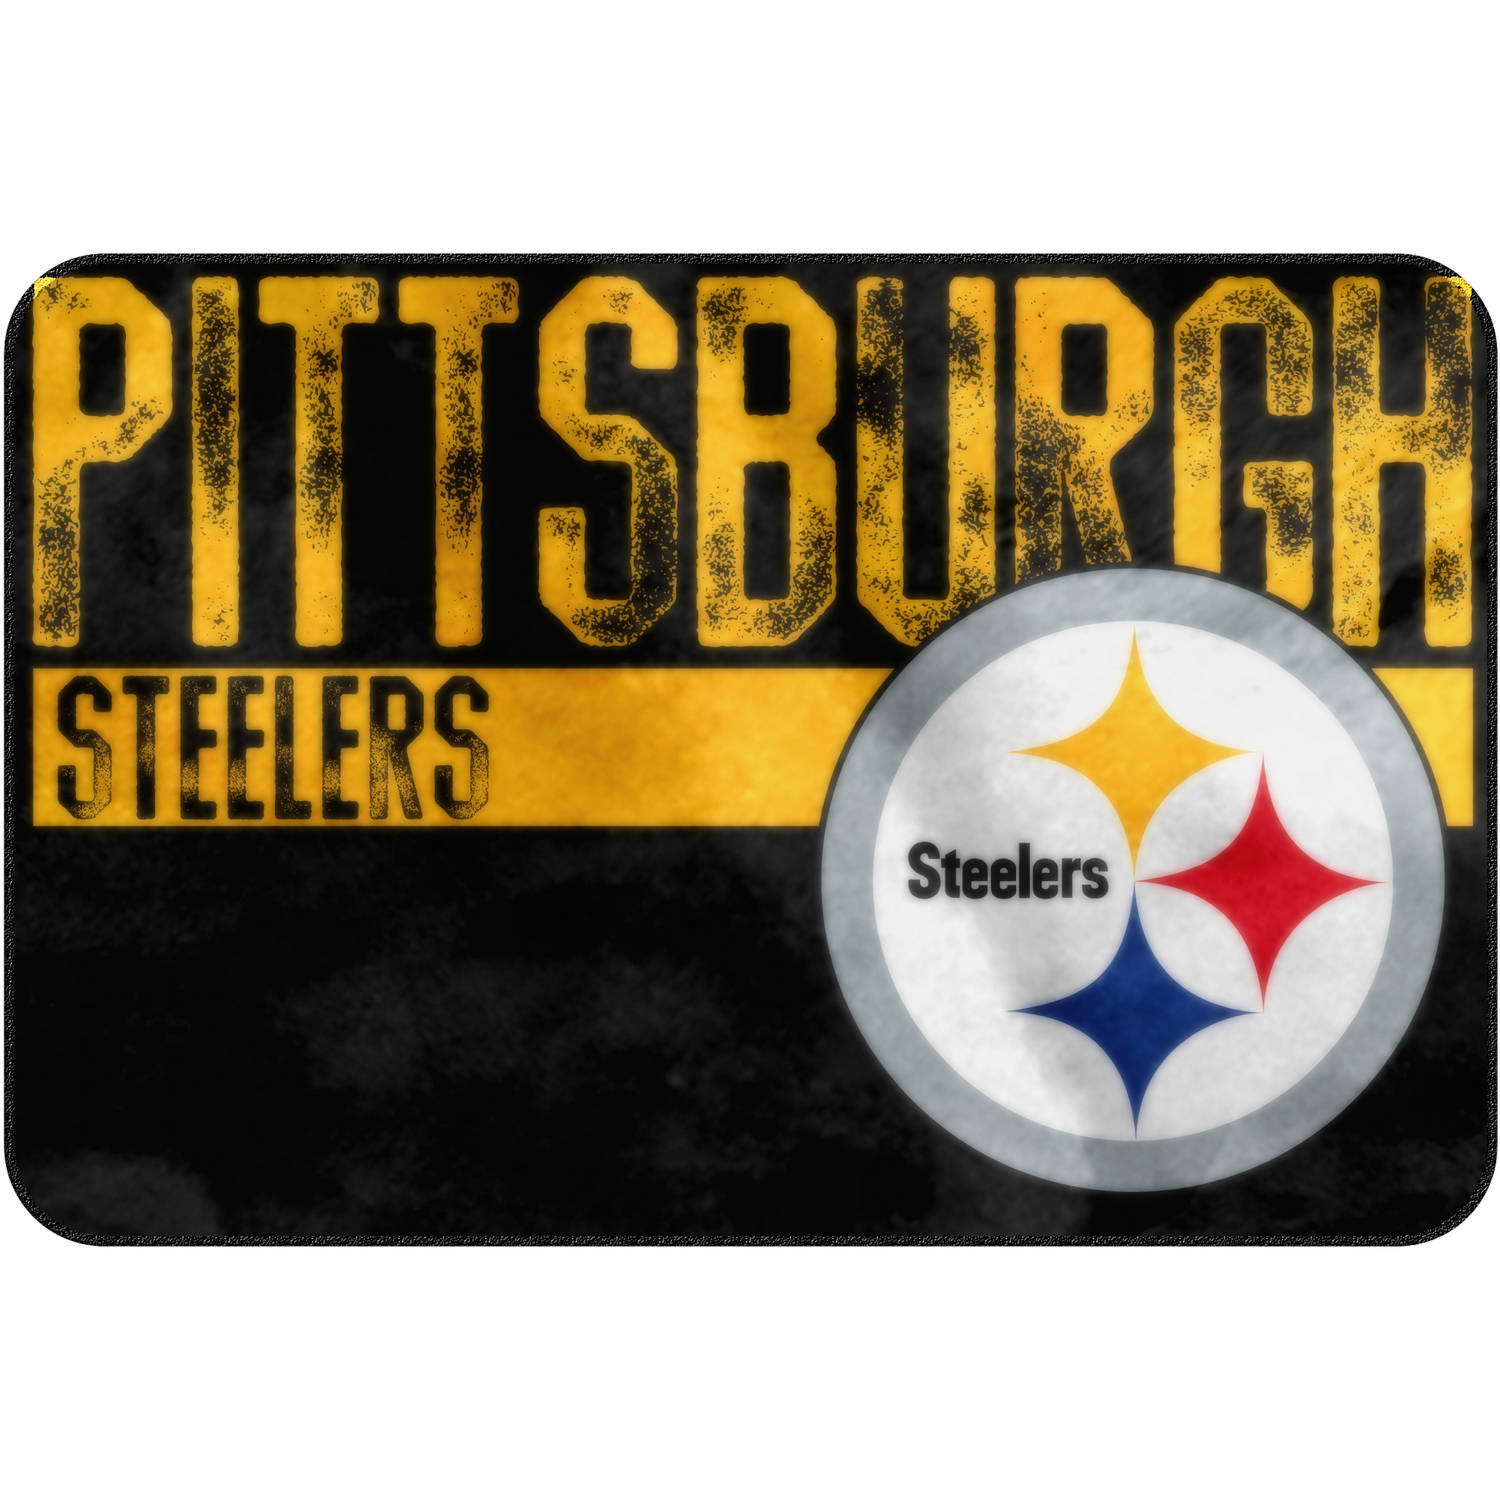 nfl pittsburgh steelers 20 x 30 worn out mat 1 each